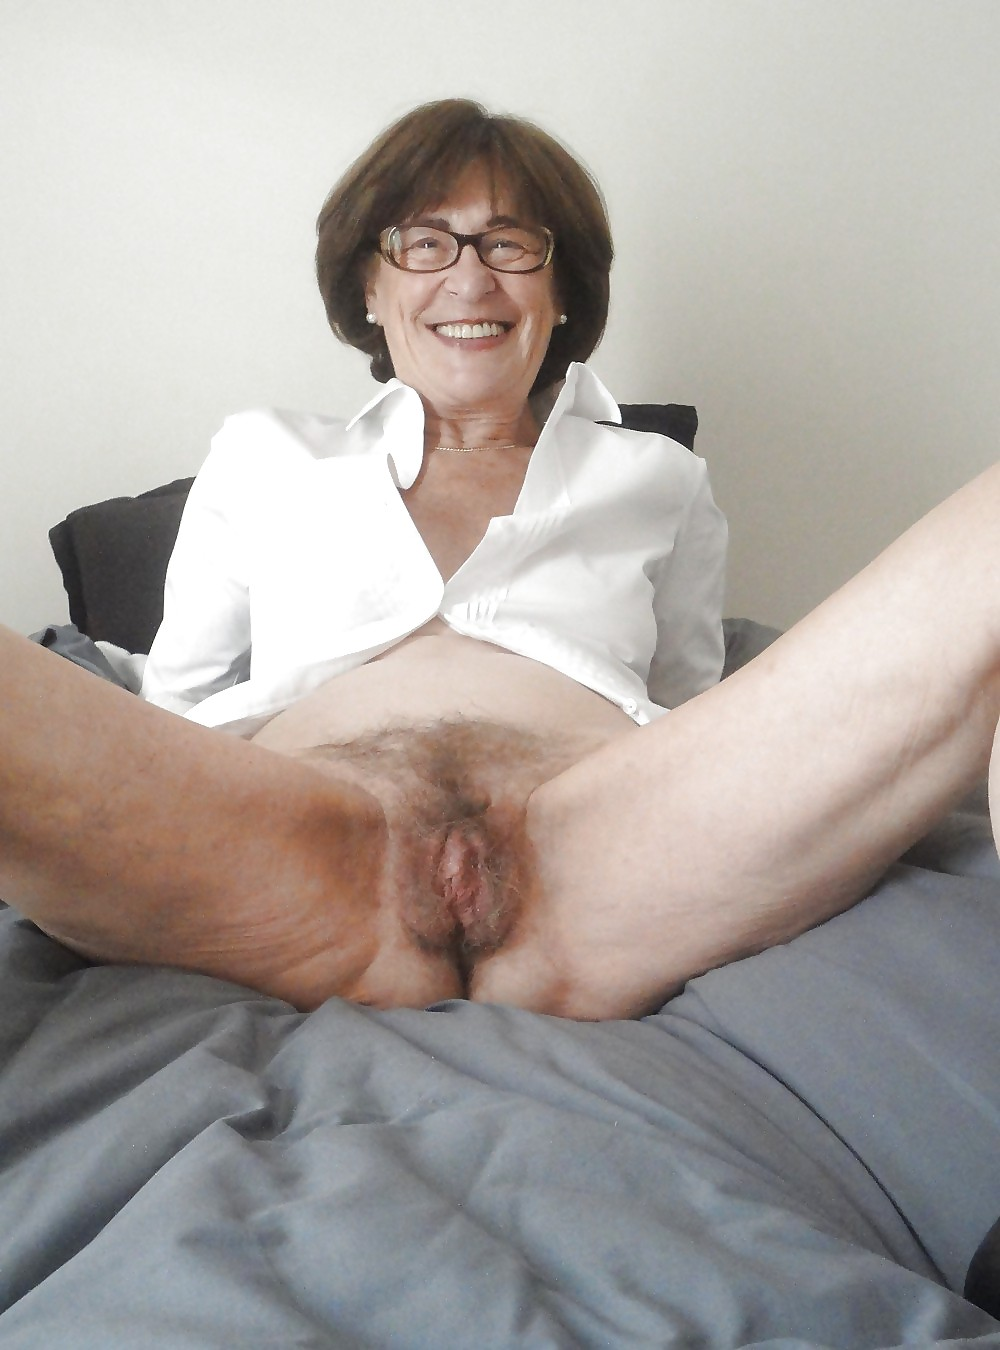 Amitire virgins having sex for first time